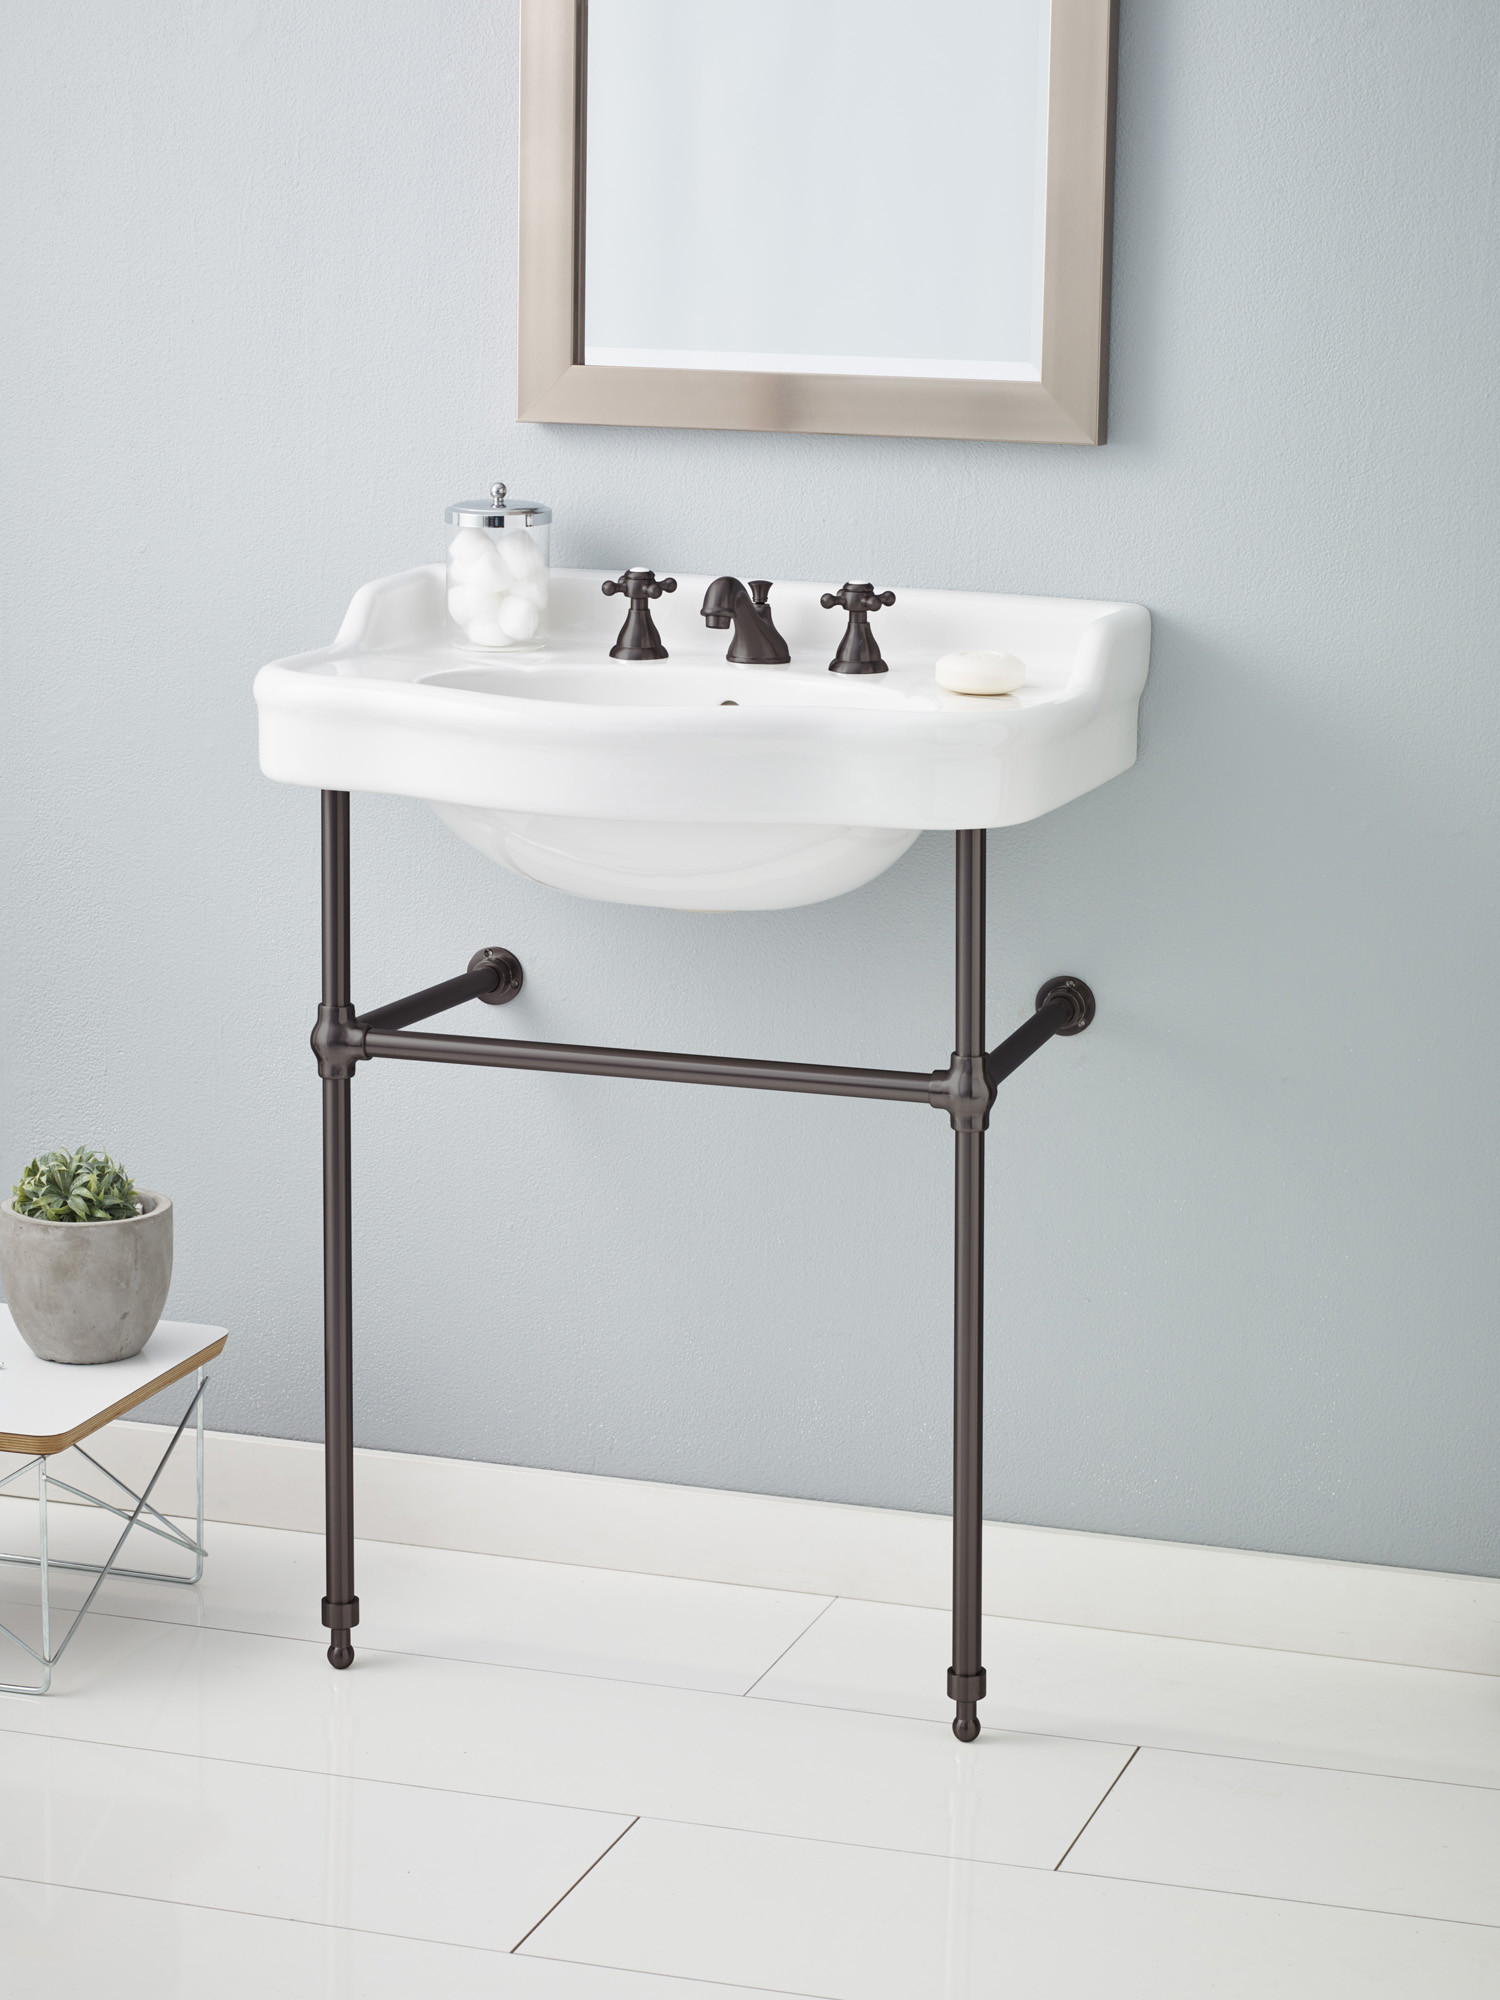 Cheviot 350-28-WH-8-575-AB Antique Lavatory Sink in White with Antique Bronze Console